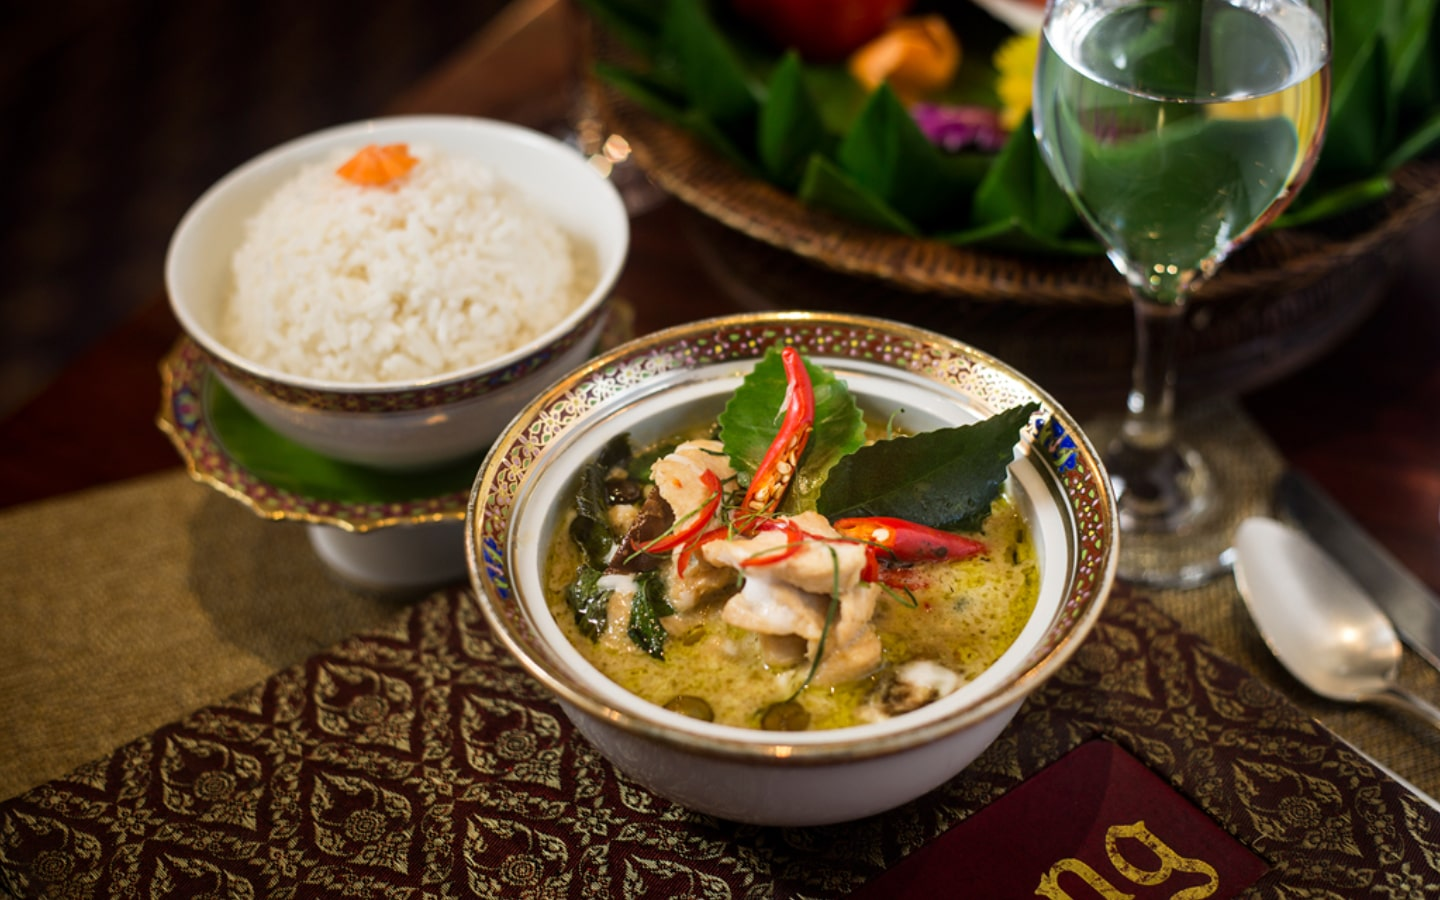 Thai Green Curry with Rice at Benjarong Restaurant in Dusit Thani Restaurant